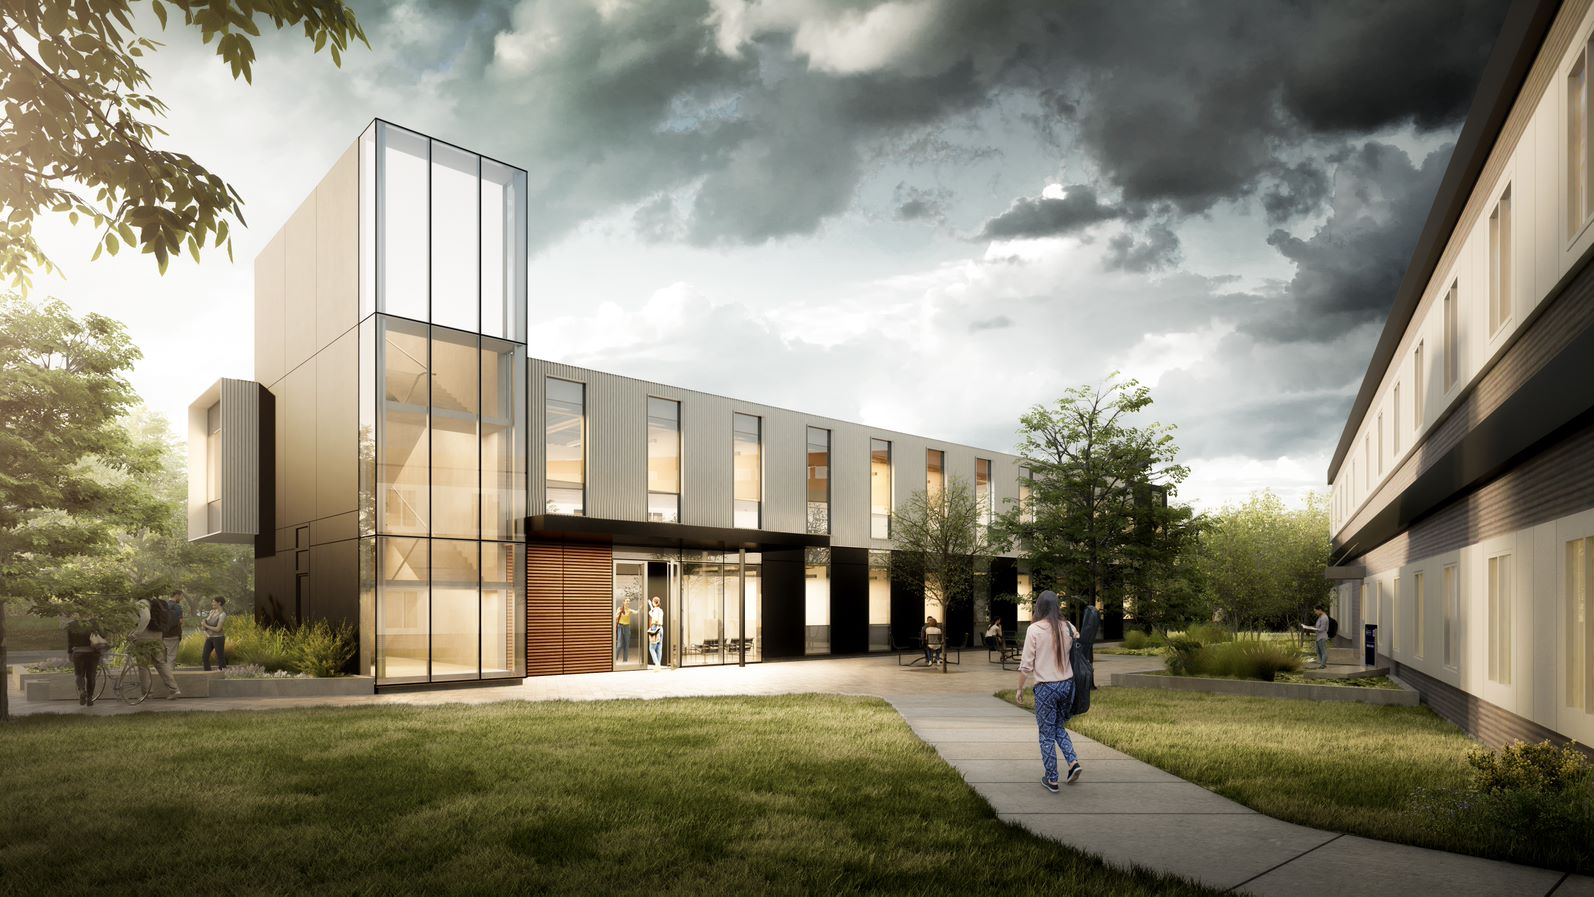 University of Toronto Modular Building Design, Mississauga, Ontario